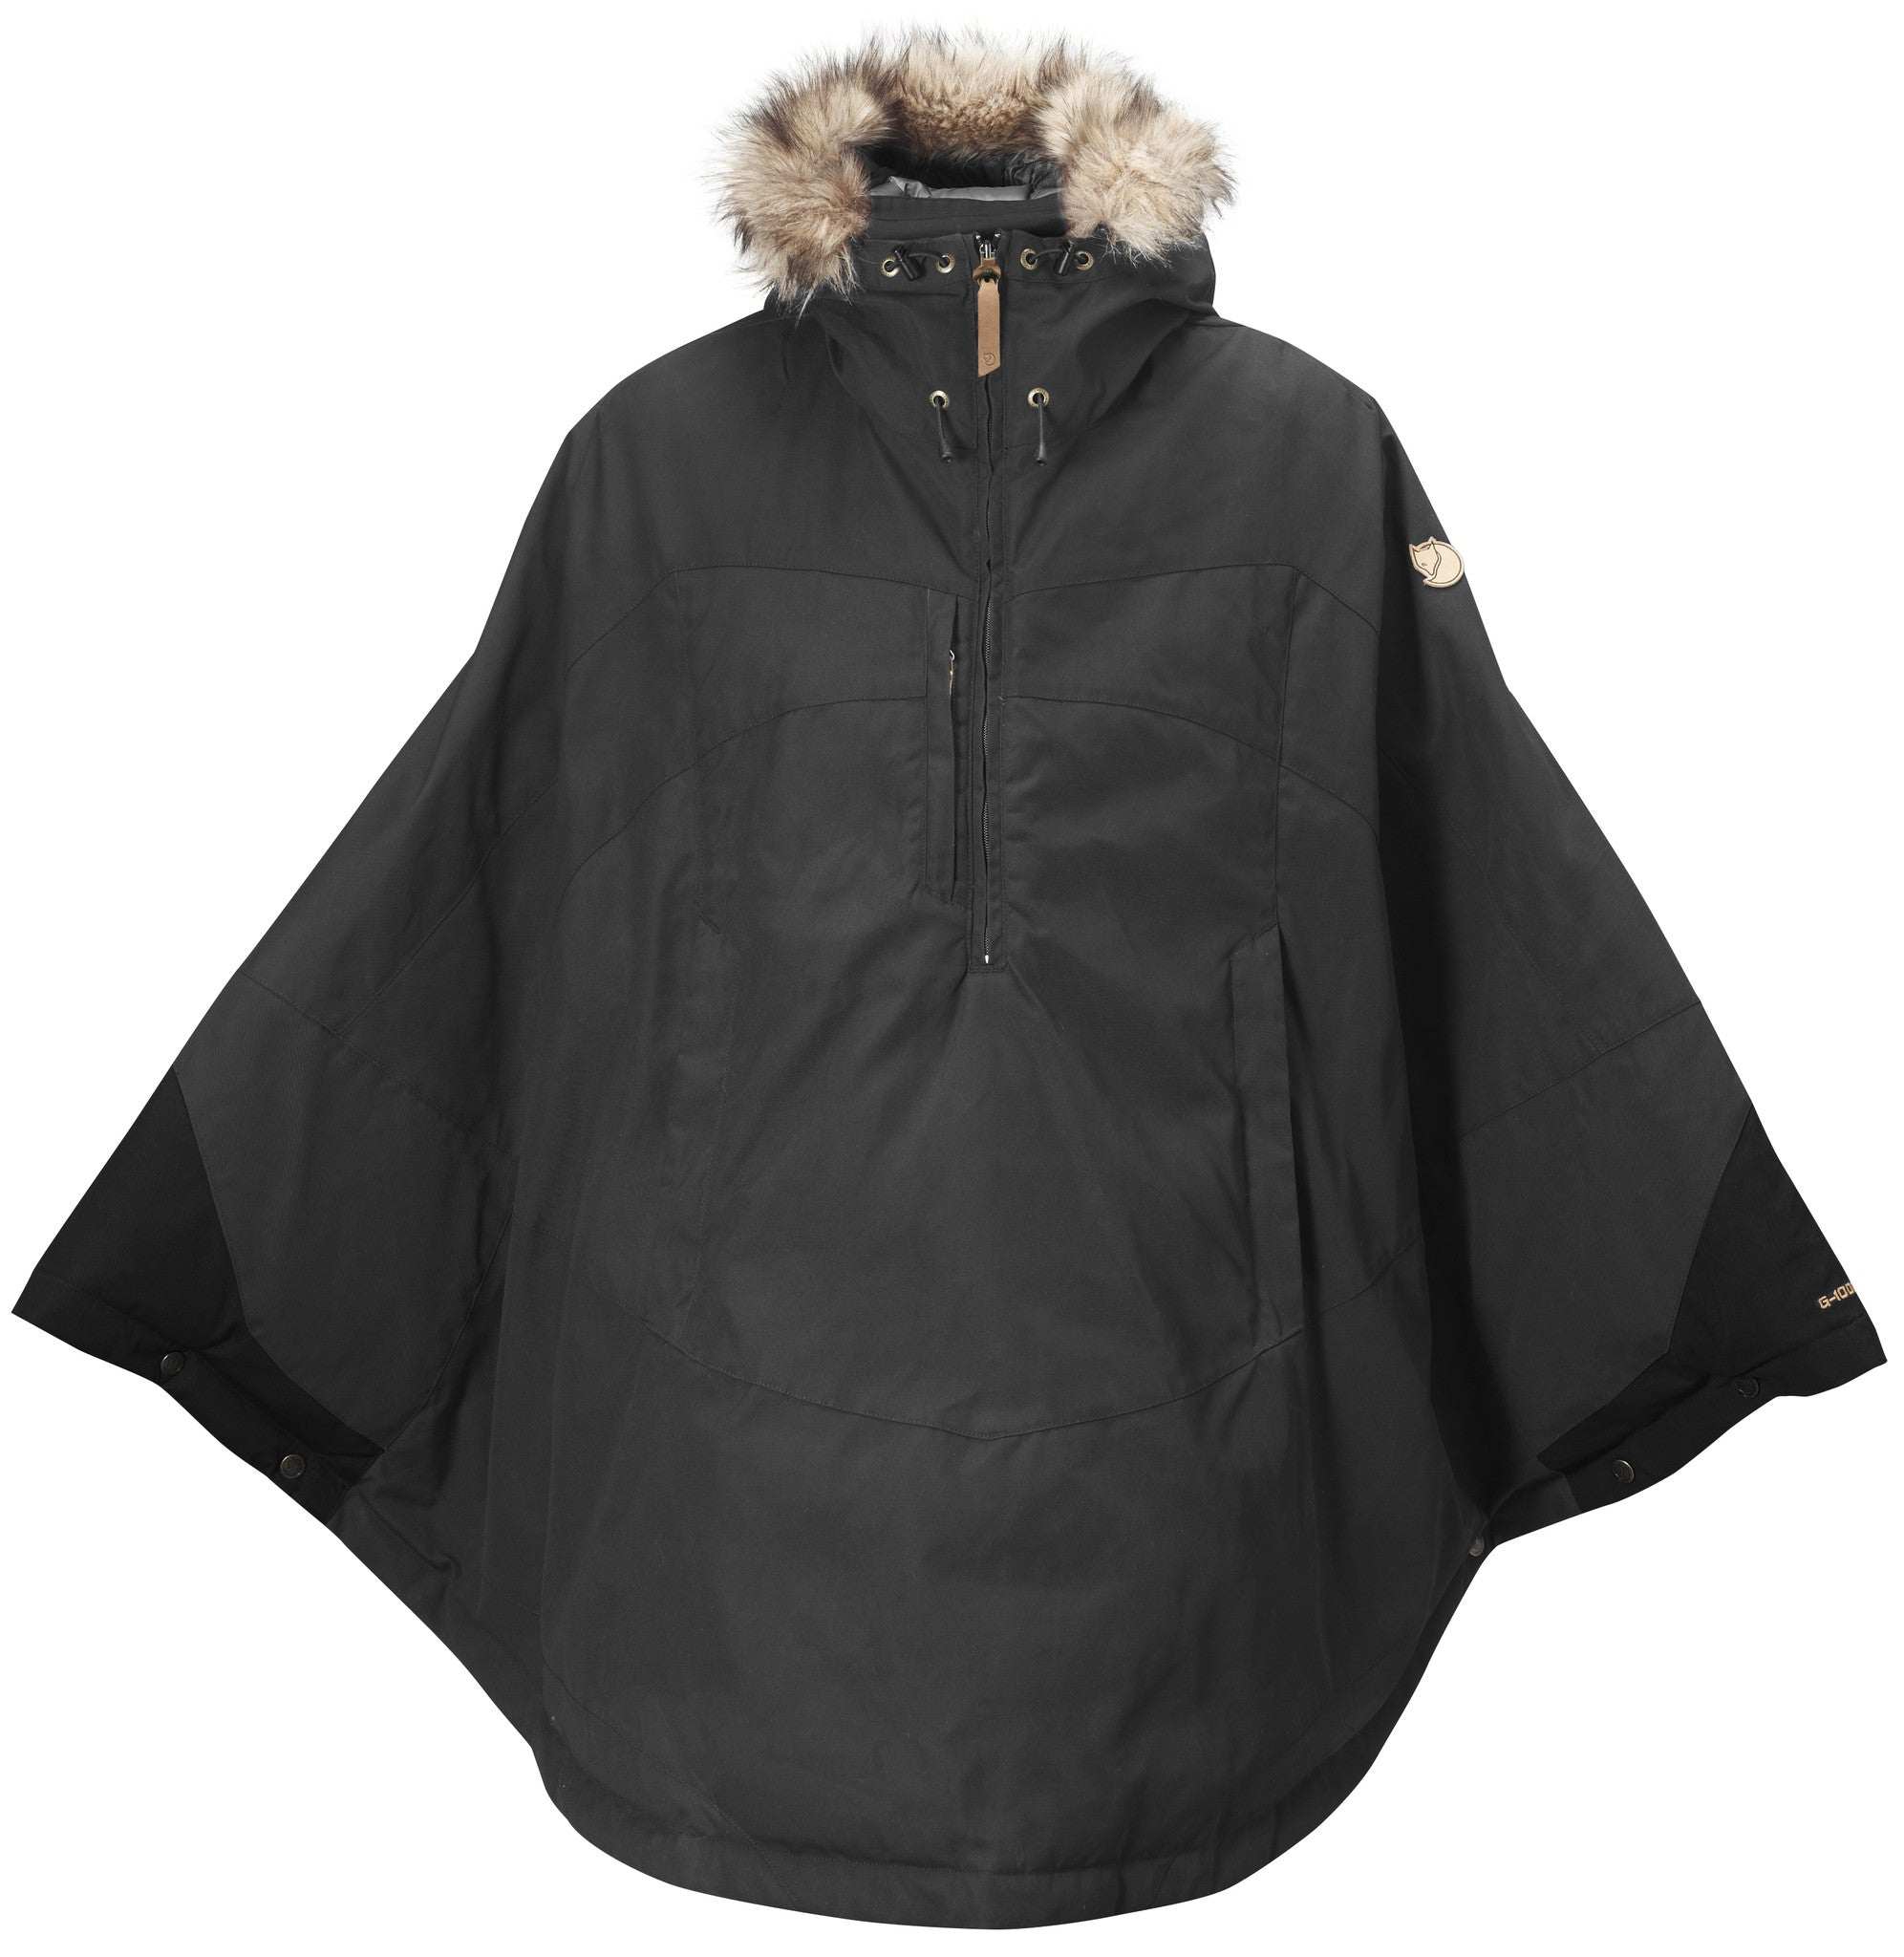 Fjallraven Women's Luhkka Jacket in Dark Grey